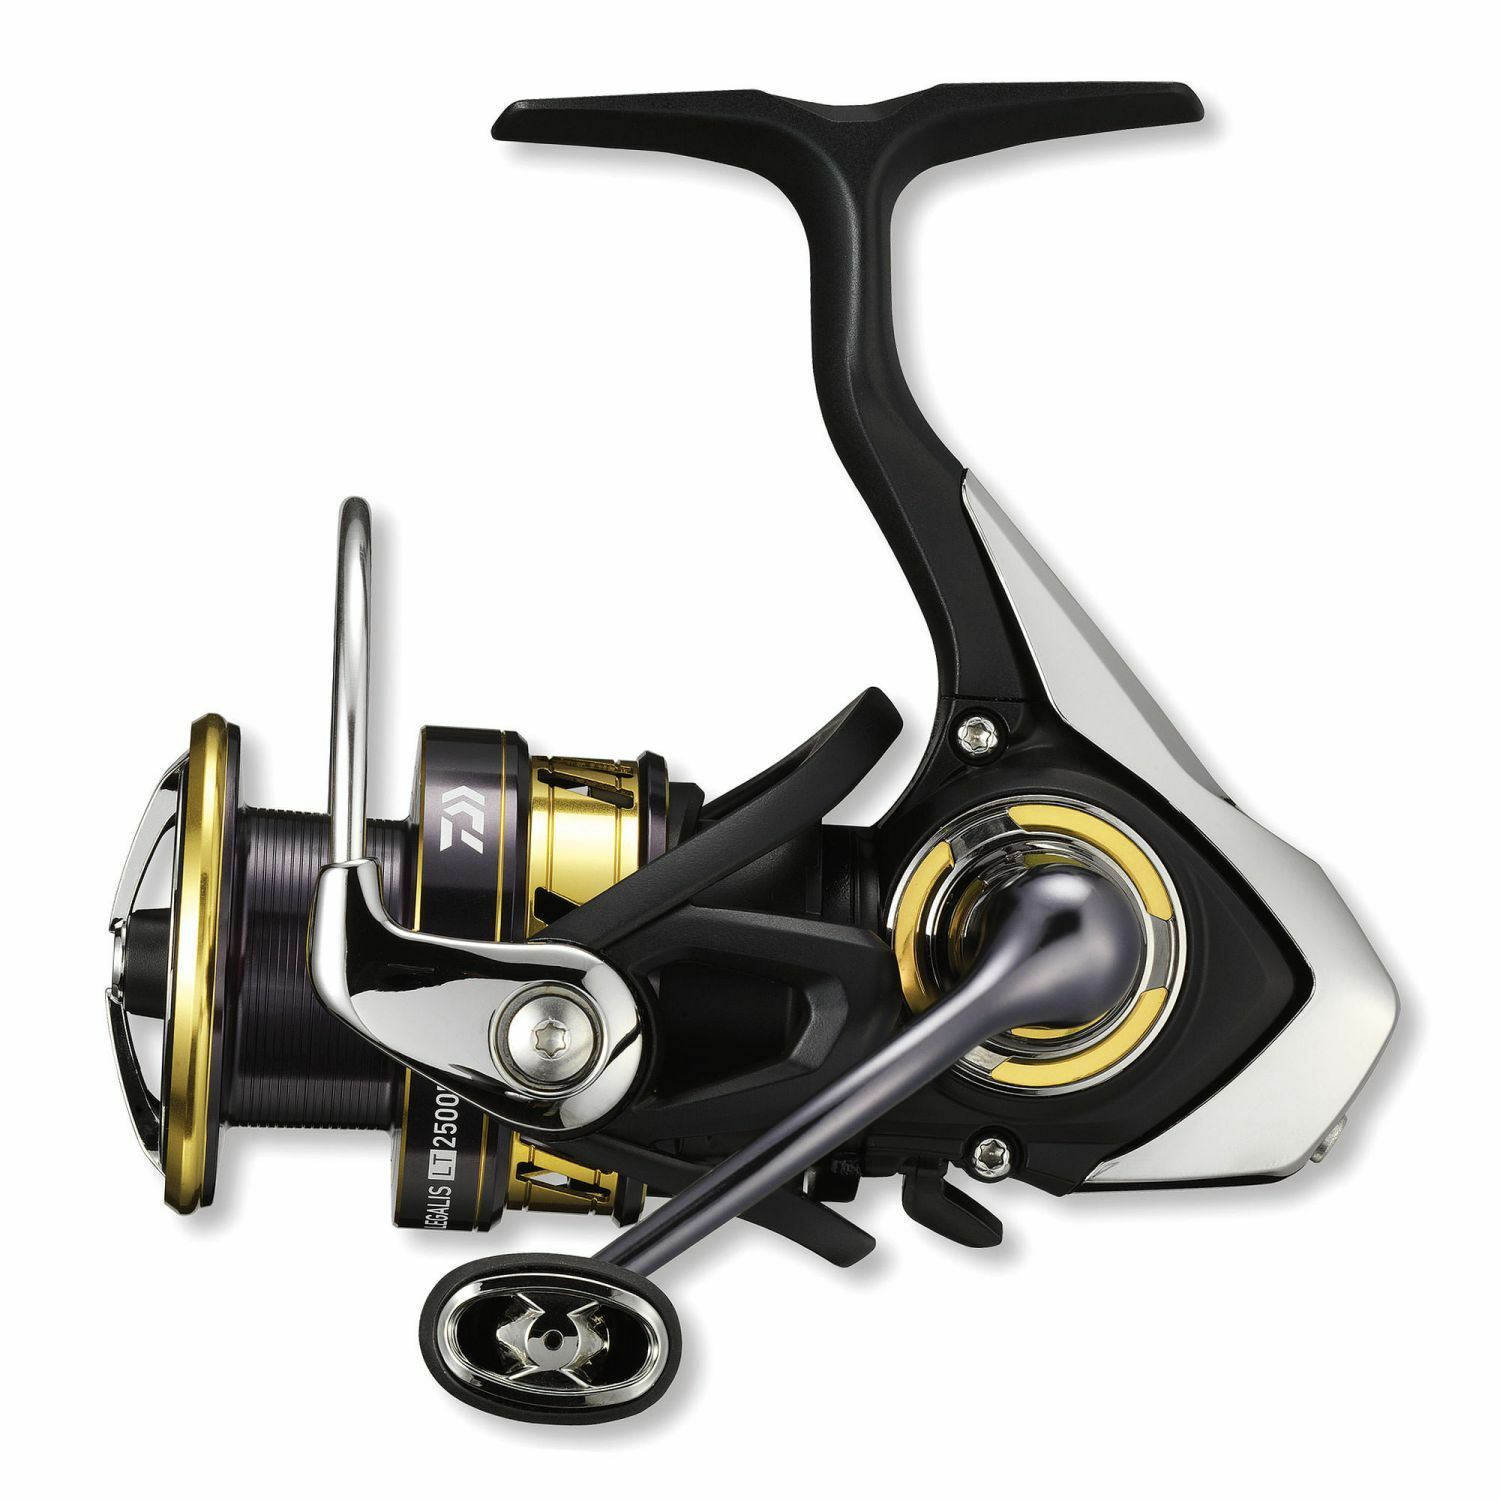 Daiwa Legalis LT D Spinnrolle Stationärrolle 1000-6000 Angelrolle Frontbremse